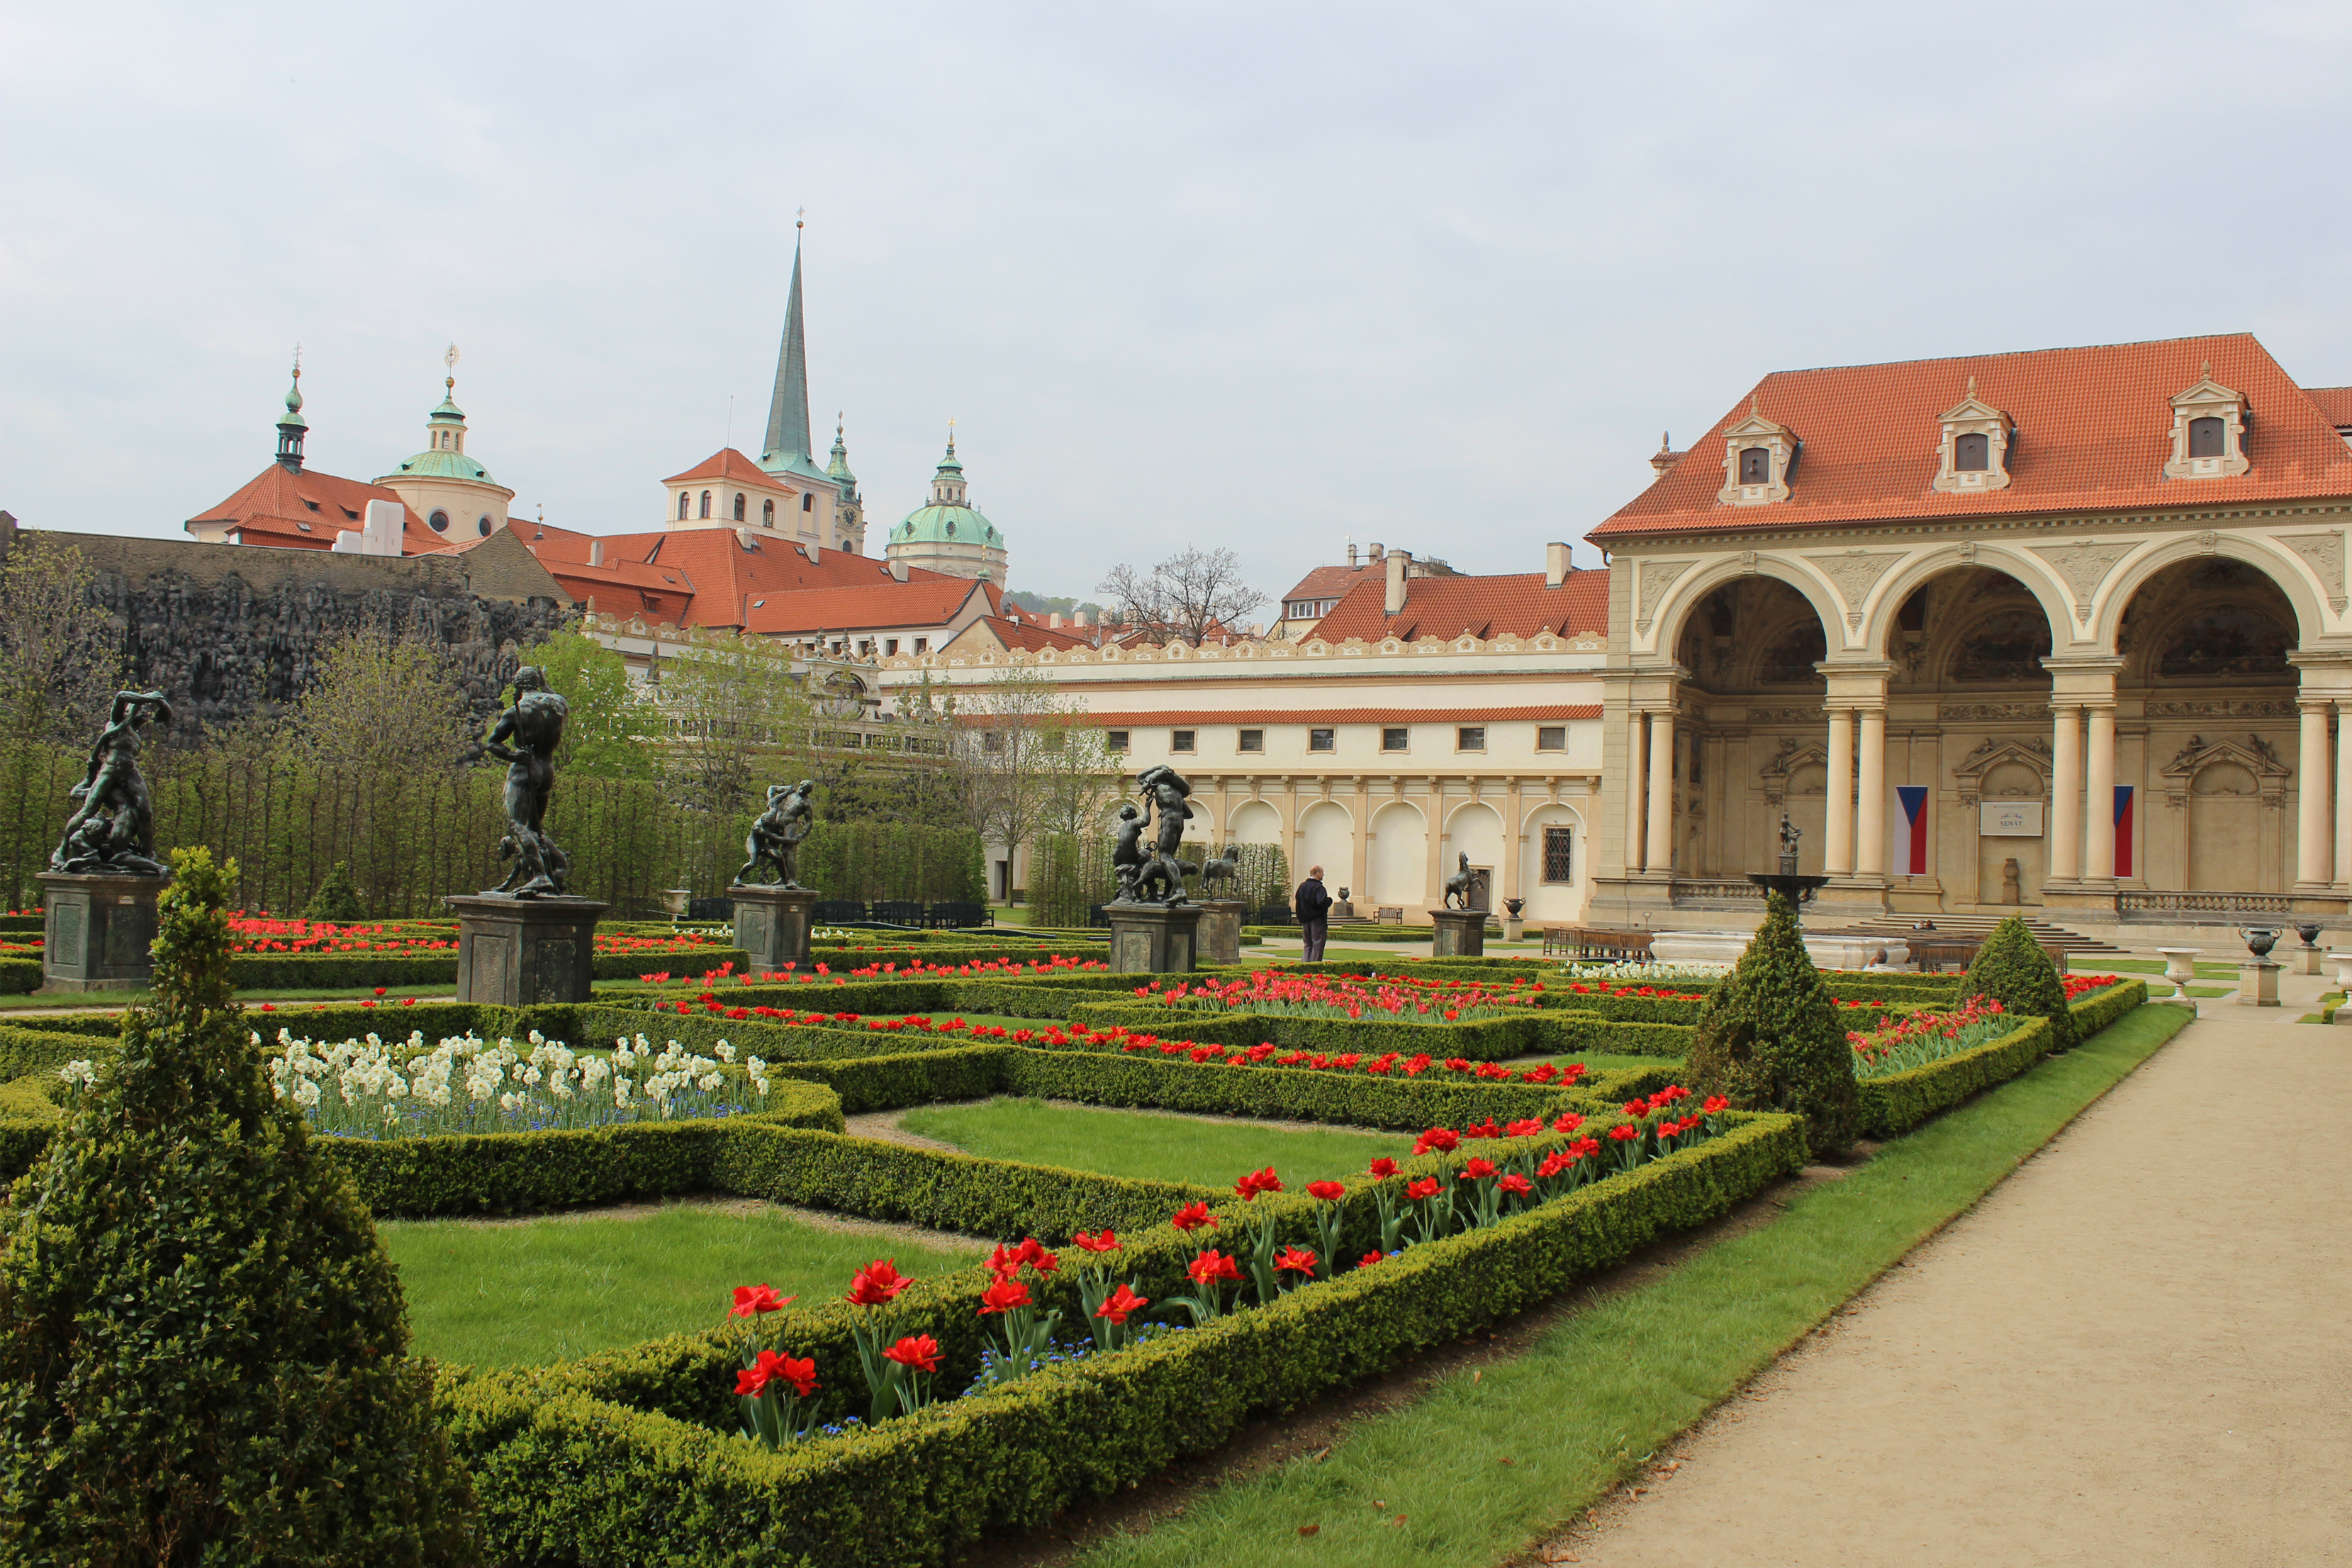 History of the pardubice palace